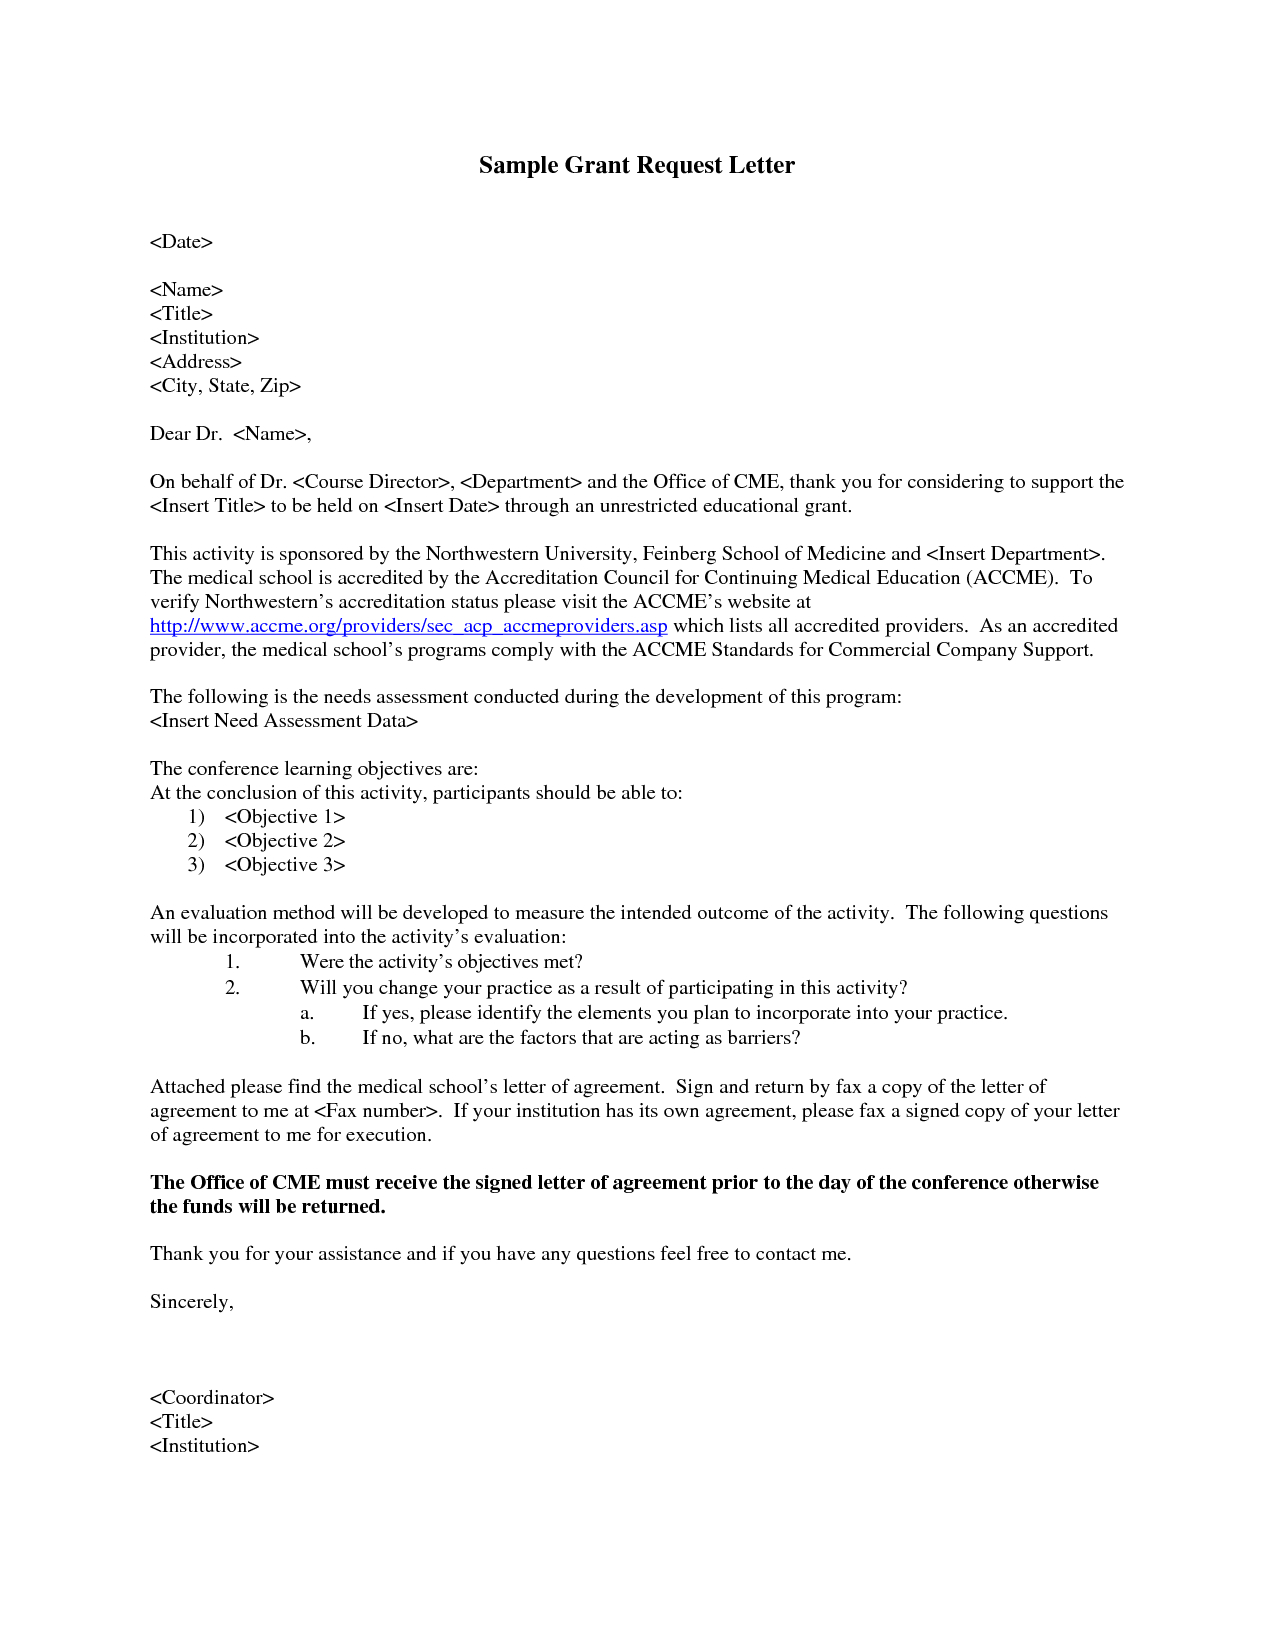 Grant Request Letter Template - Researchrant Proposal Cover Letter Sample Funding Template